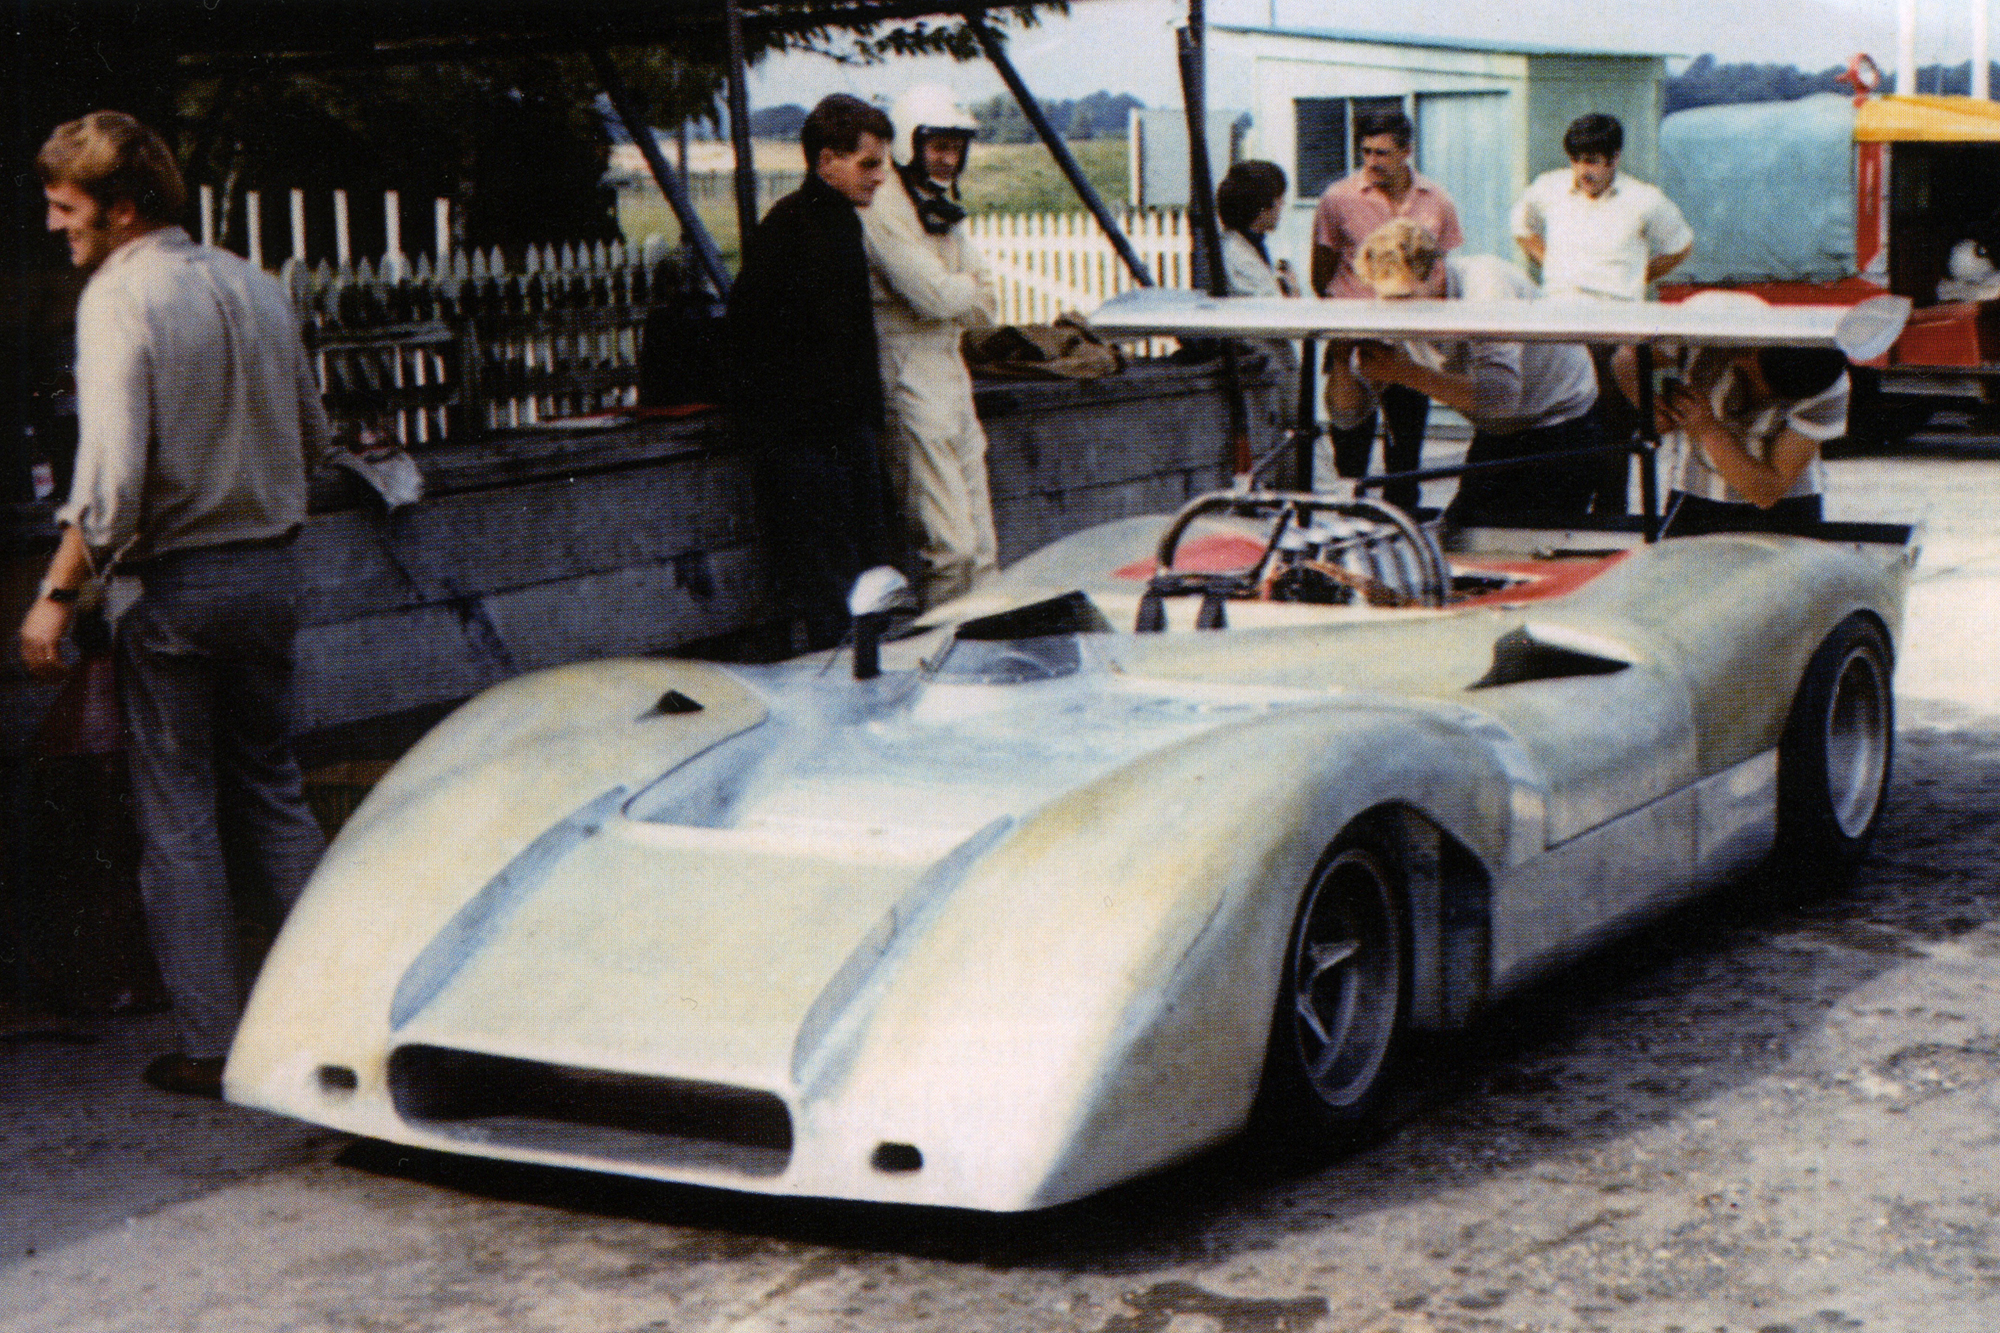 Again working with Len Bailey, Alan Mann Racing produced a new Can-Am car named the Open Sports Ford.